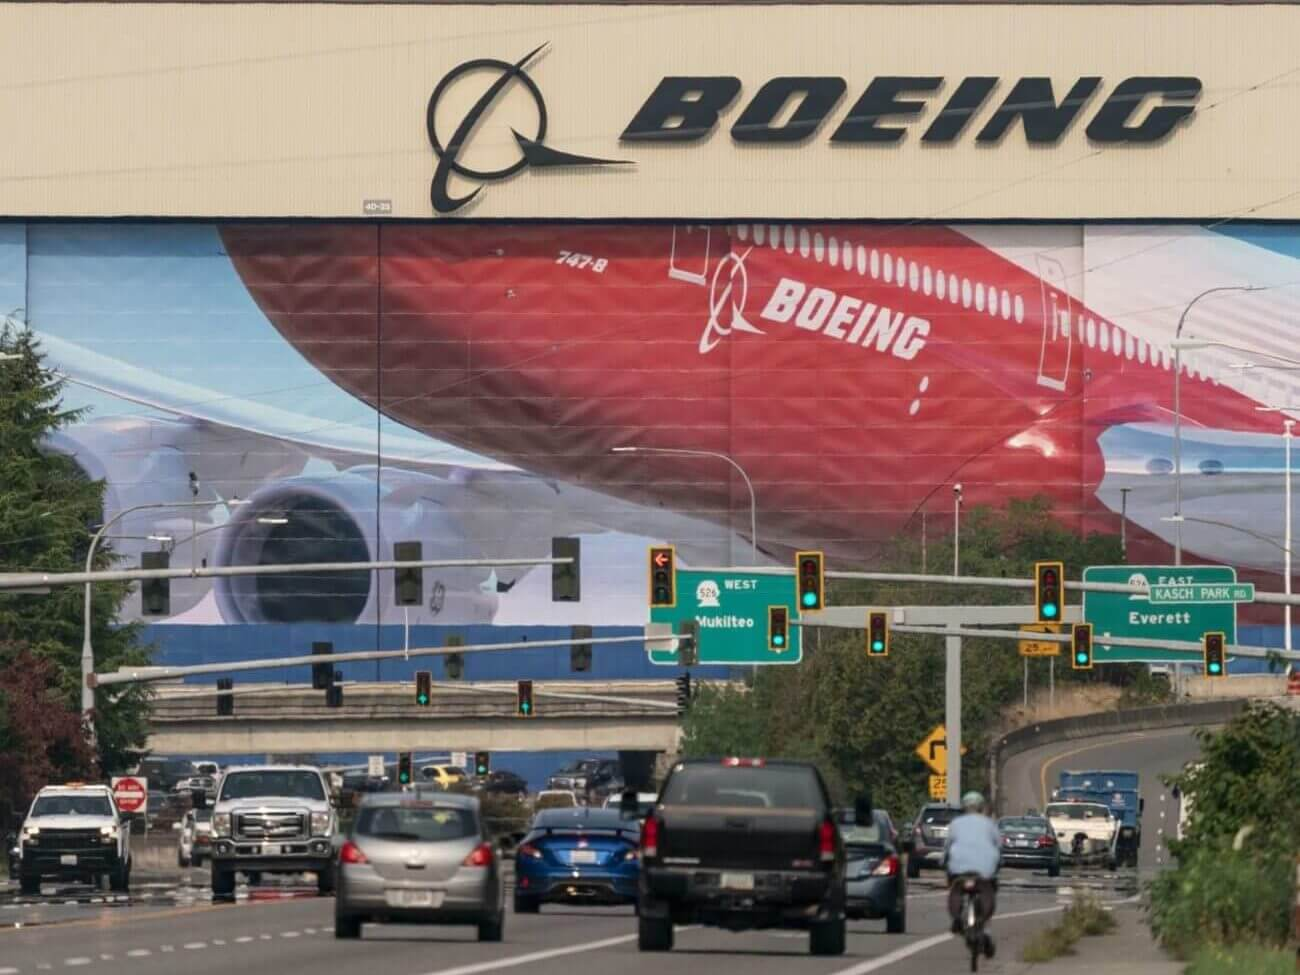 Boeing Is the Most modern Company to Ride a Adverse Substitute Ambiance